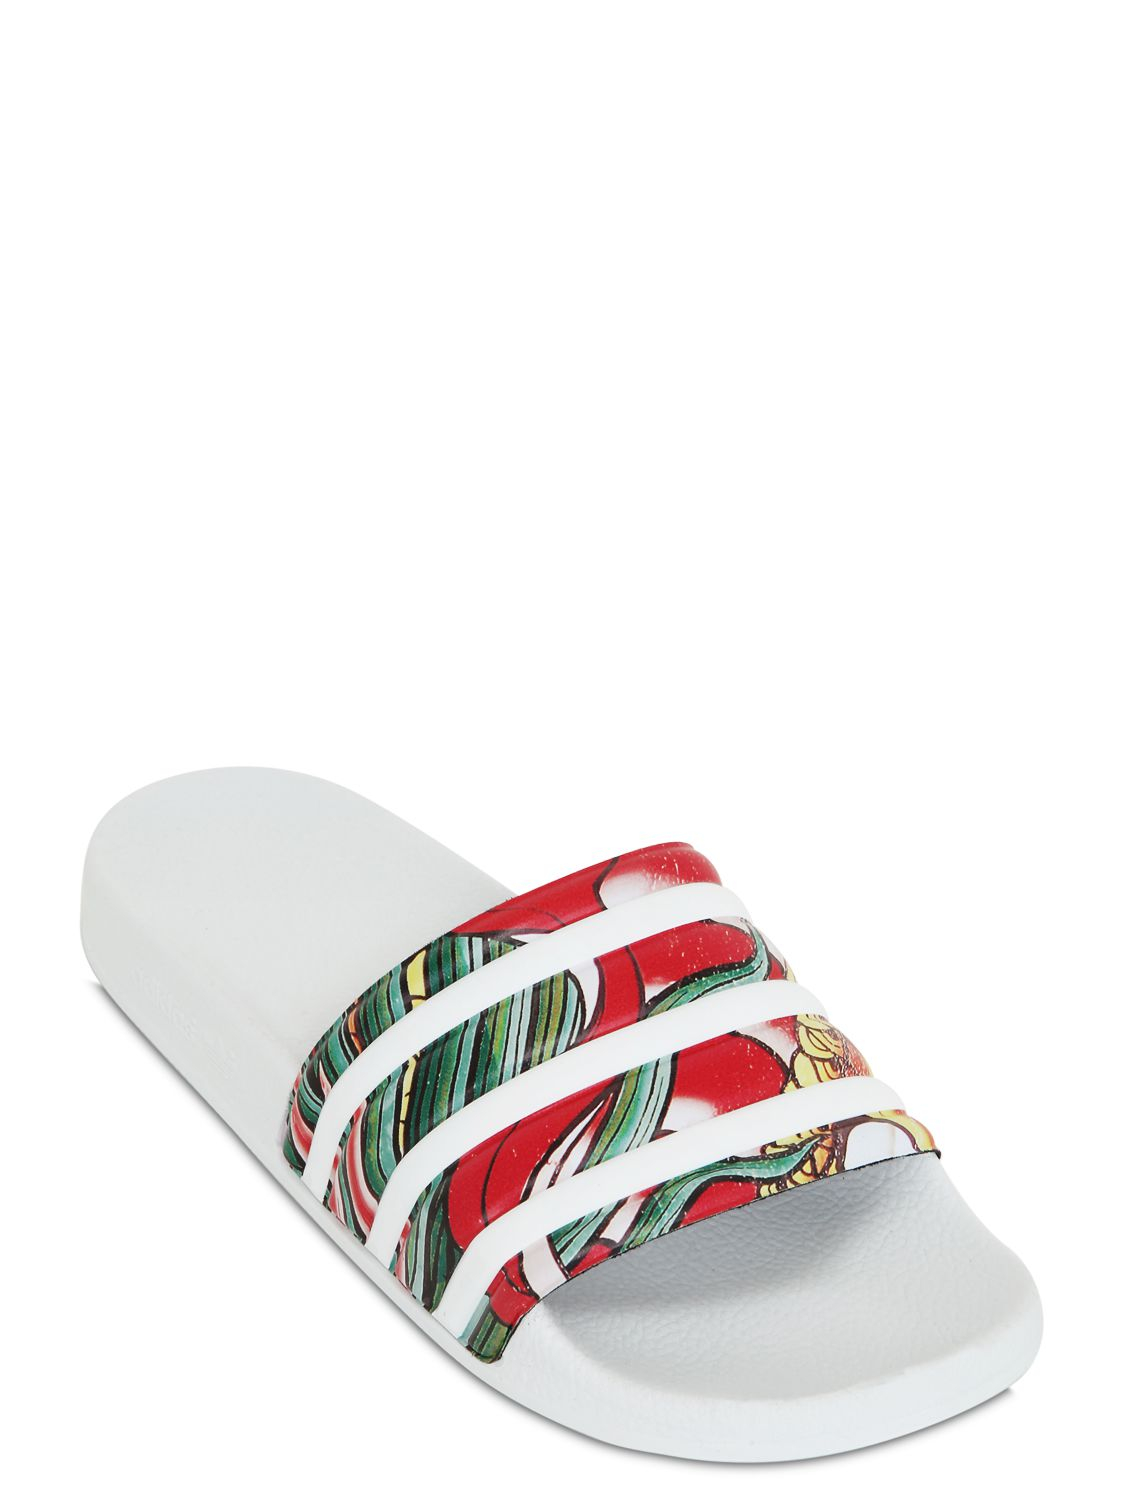 72a7eb064b7a adidas Originals Js Adilet Printed Slide Sandals in White - Lyst